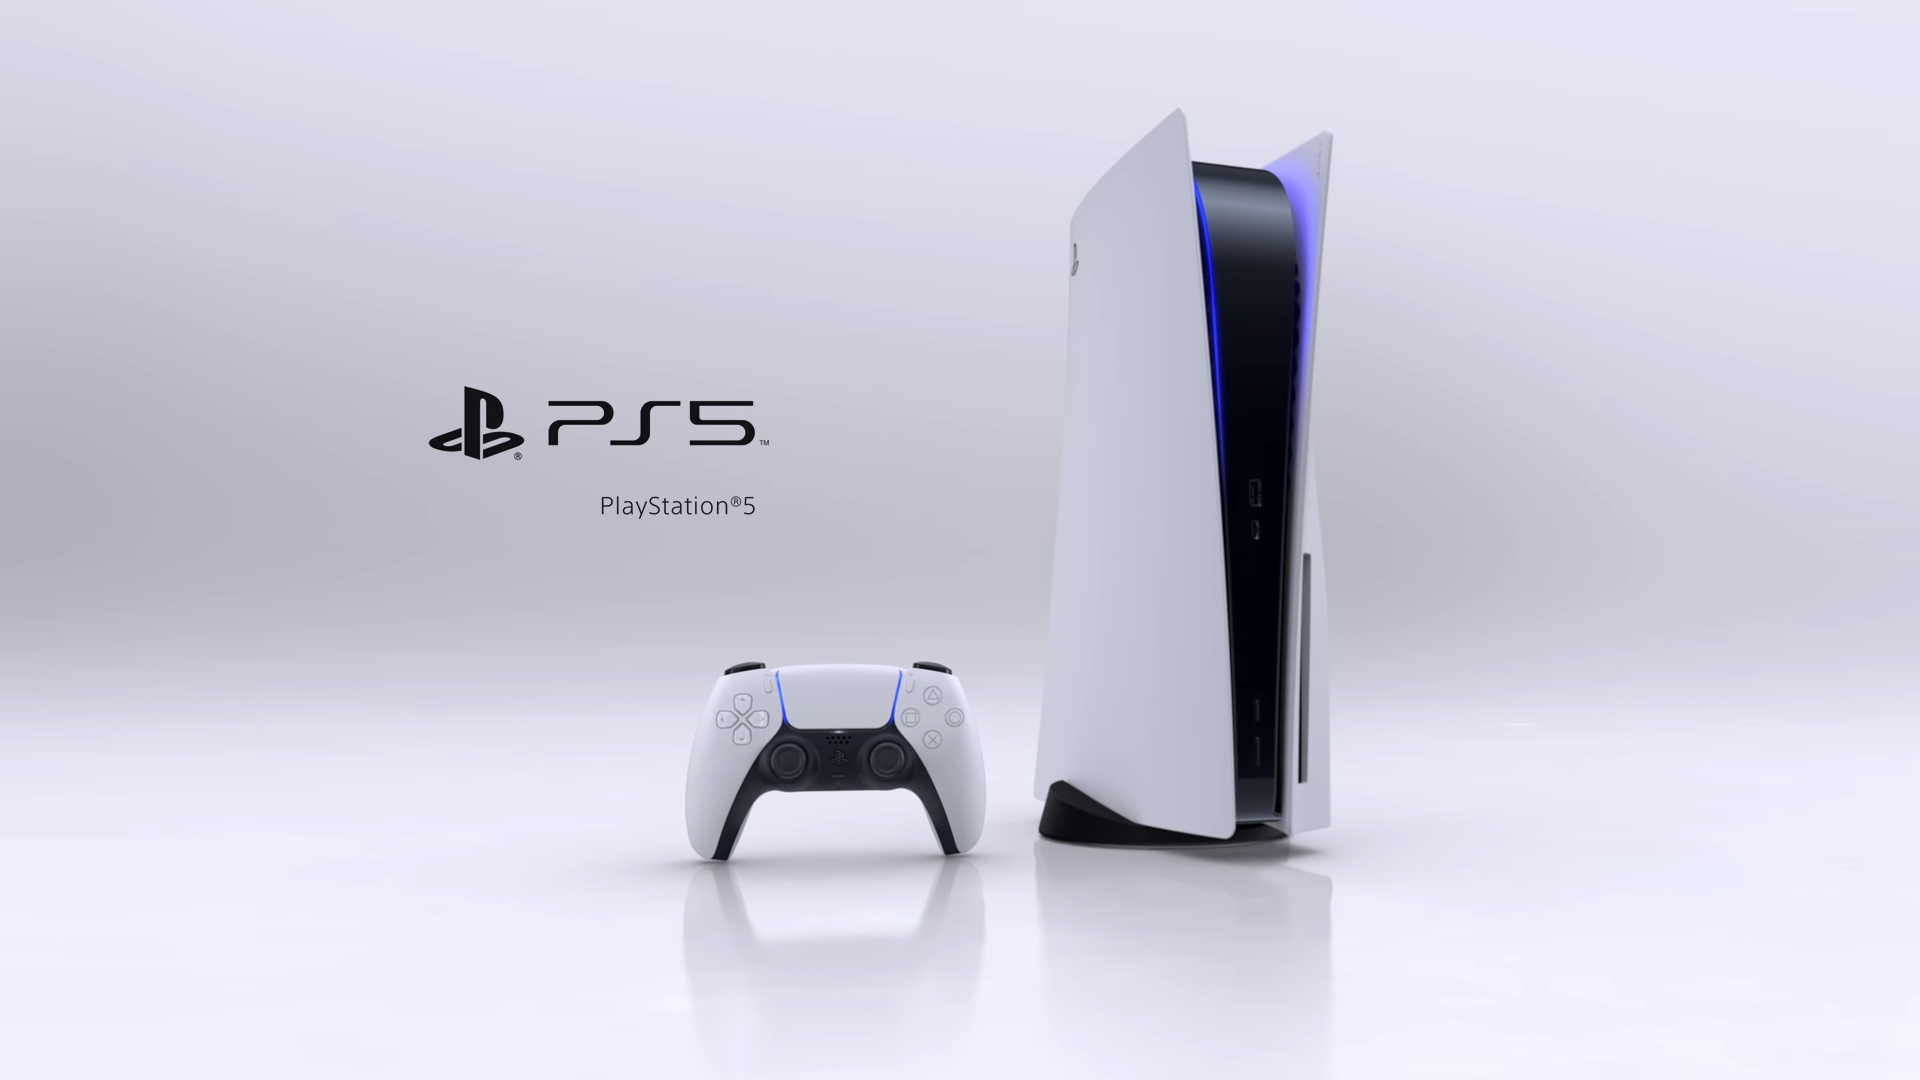 The PlayStation 5 sitting upright flanked by the DualSense controller.